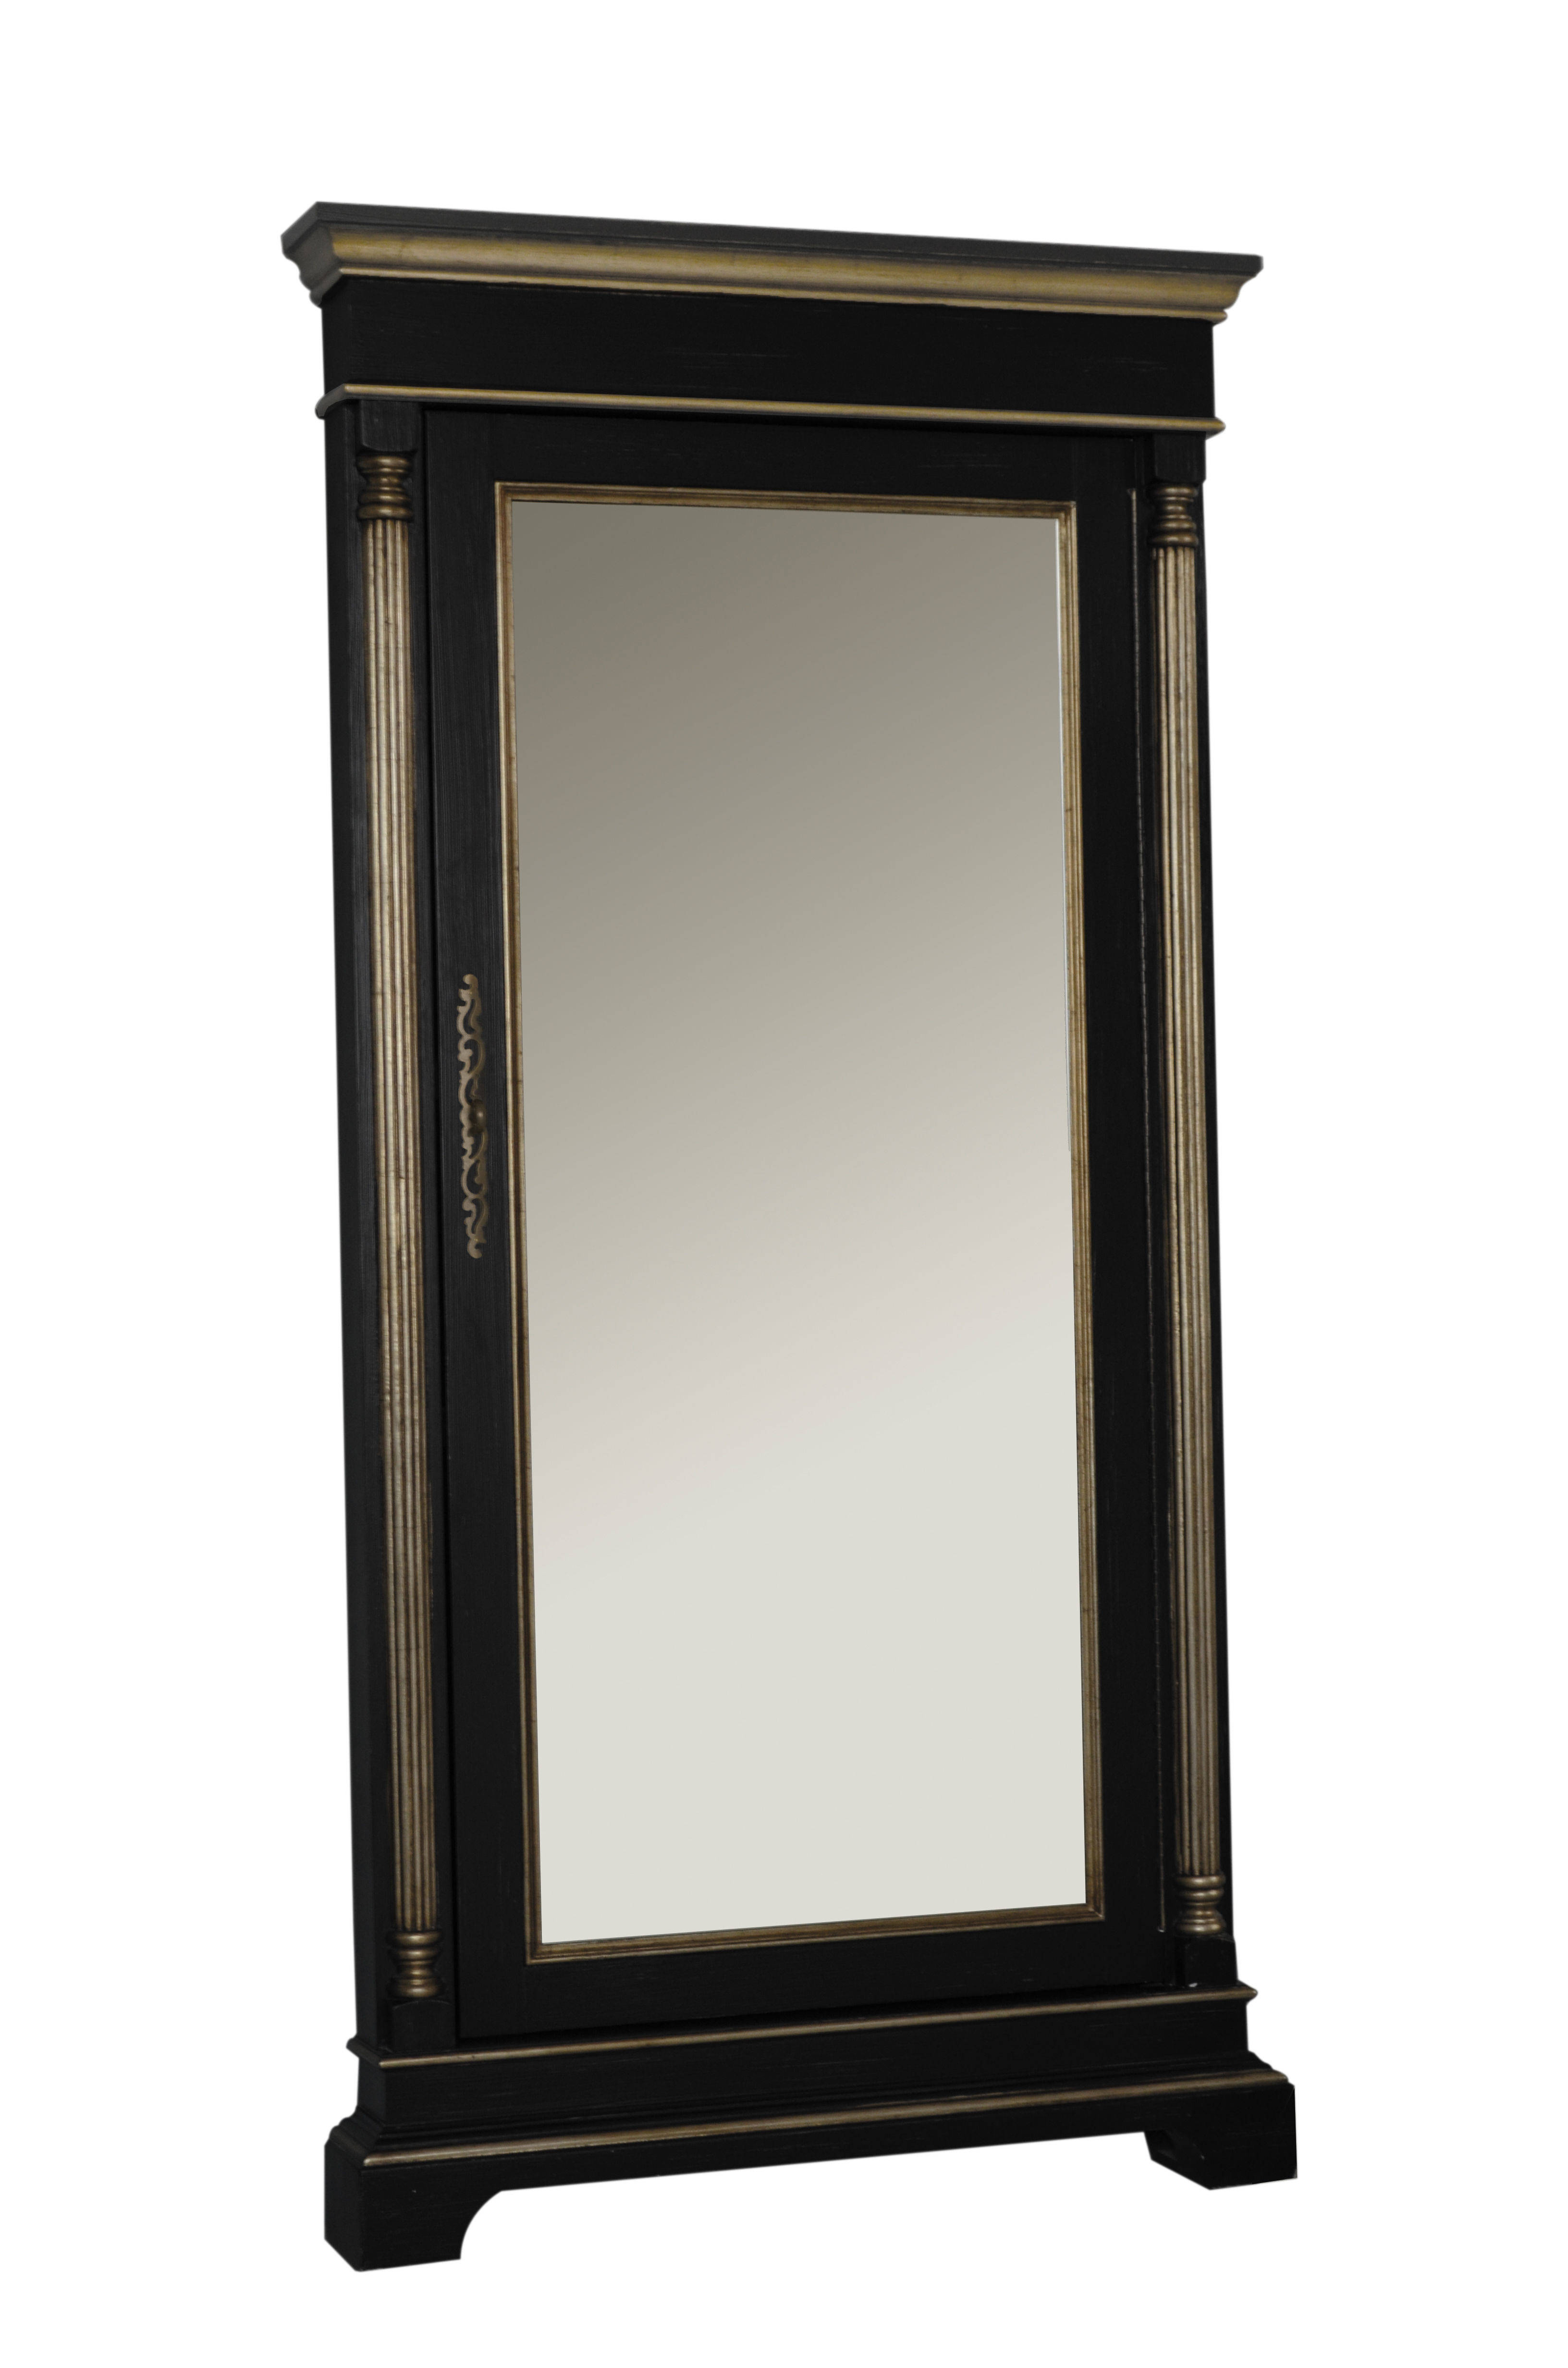 Classic Black Wood Accent Floor Mirror | The Classy Home Intended For Wood Accent Mirrors (View 22 of 30)